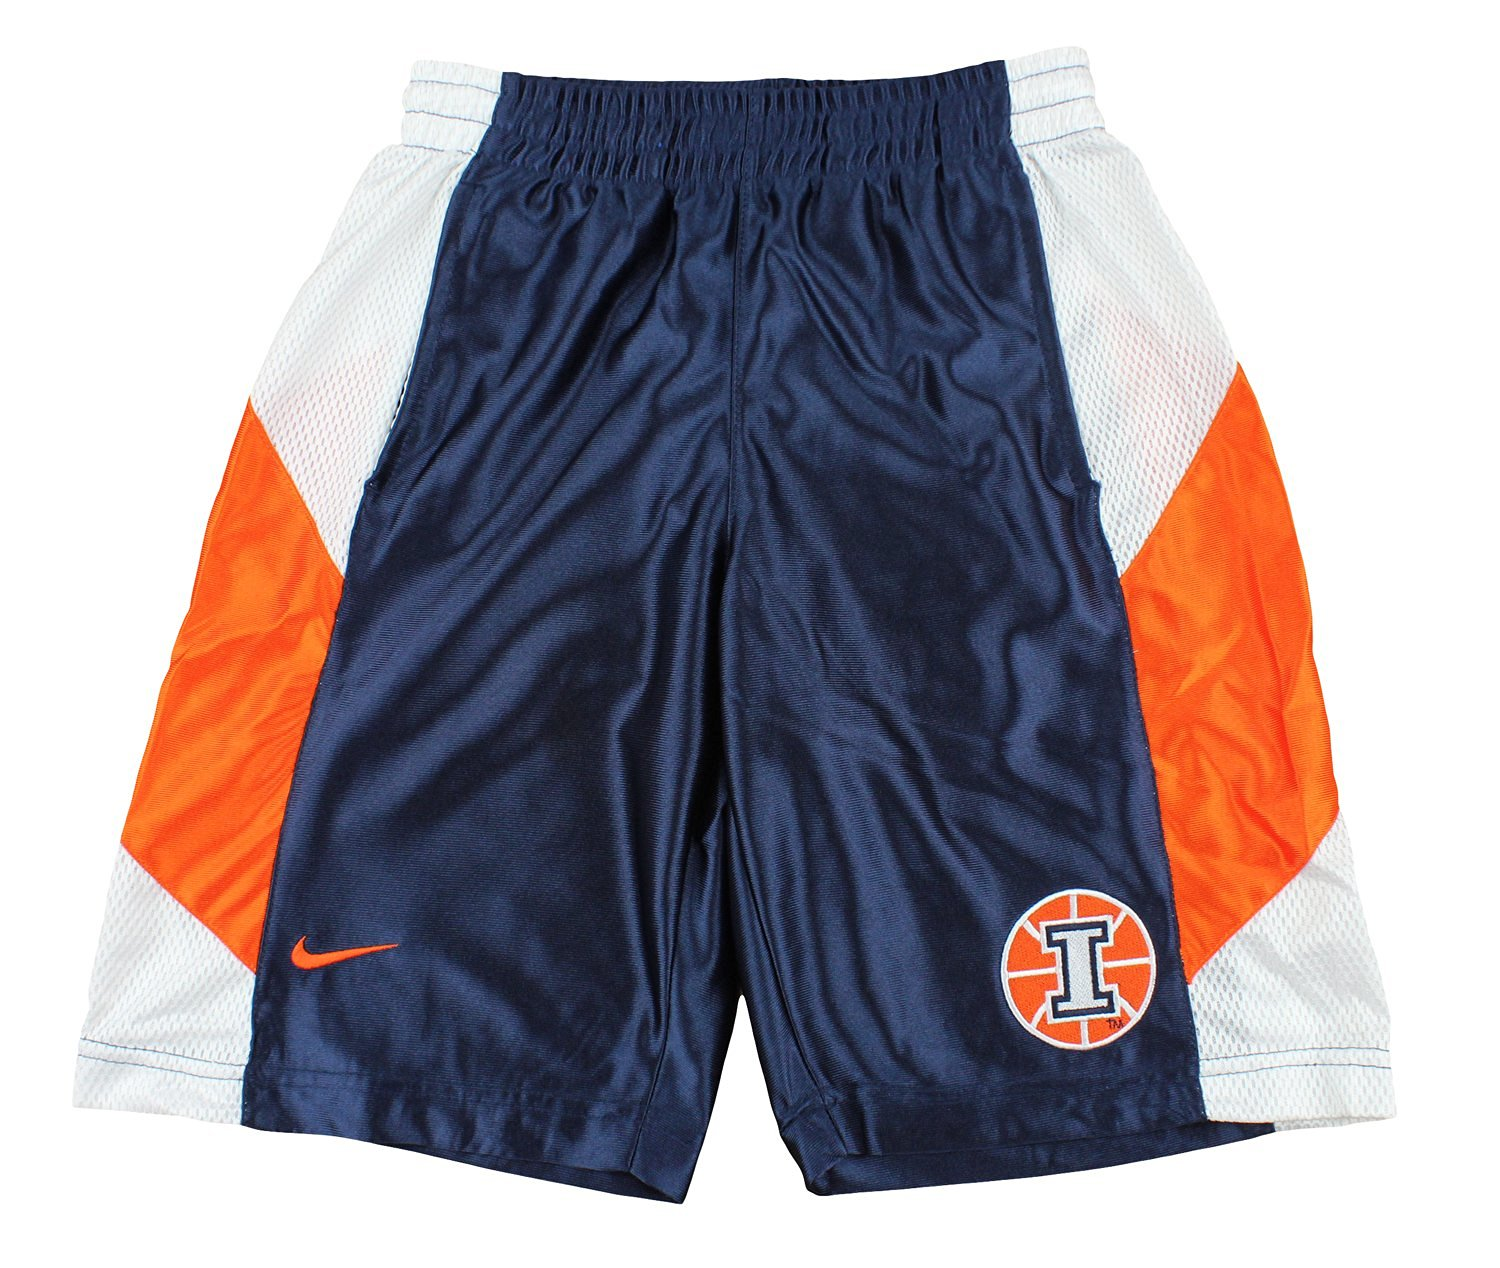 a047f6e45d Get Quotations · Nike NCAA Big Boys Youth Illinois Fighting Illini  Basketball Tourney Shorts